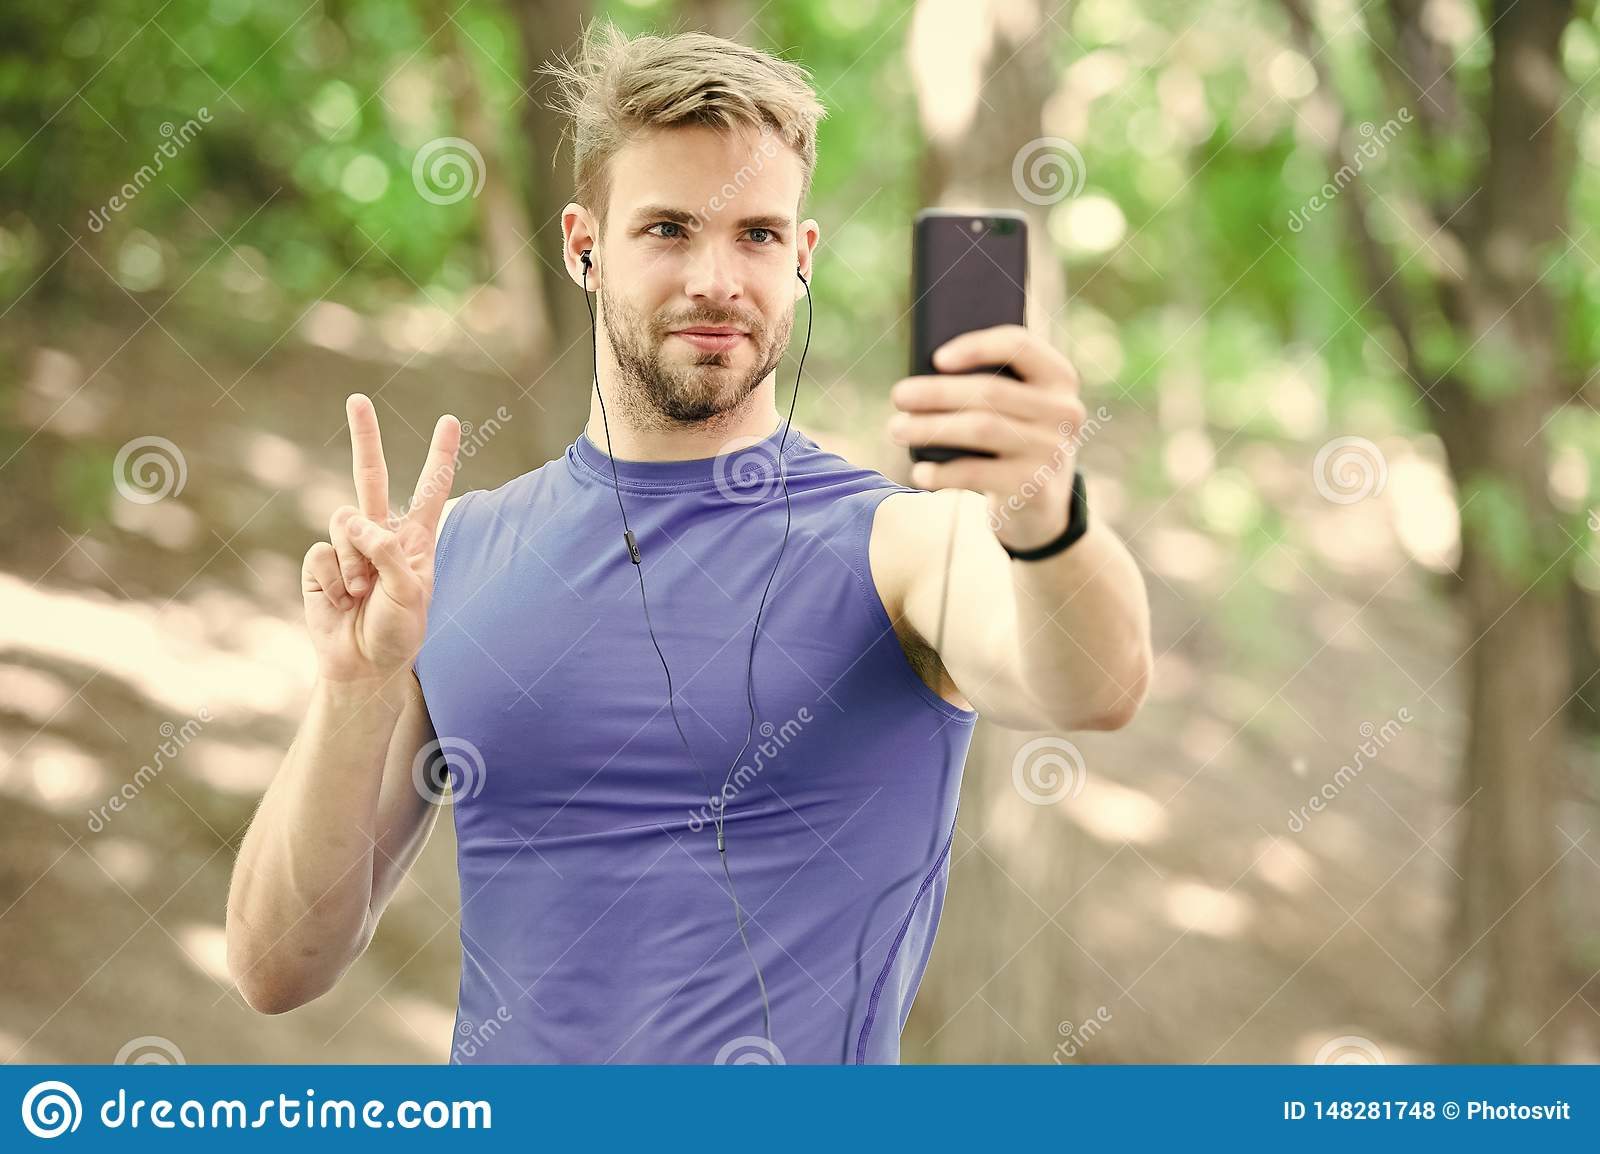 Man athlete concentrated face take smartphone photo nature background. Sportsman take photo winner sport competition